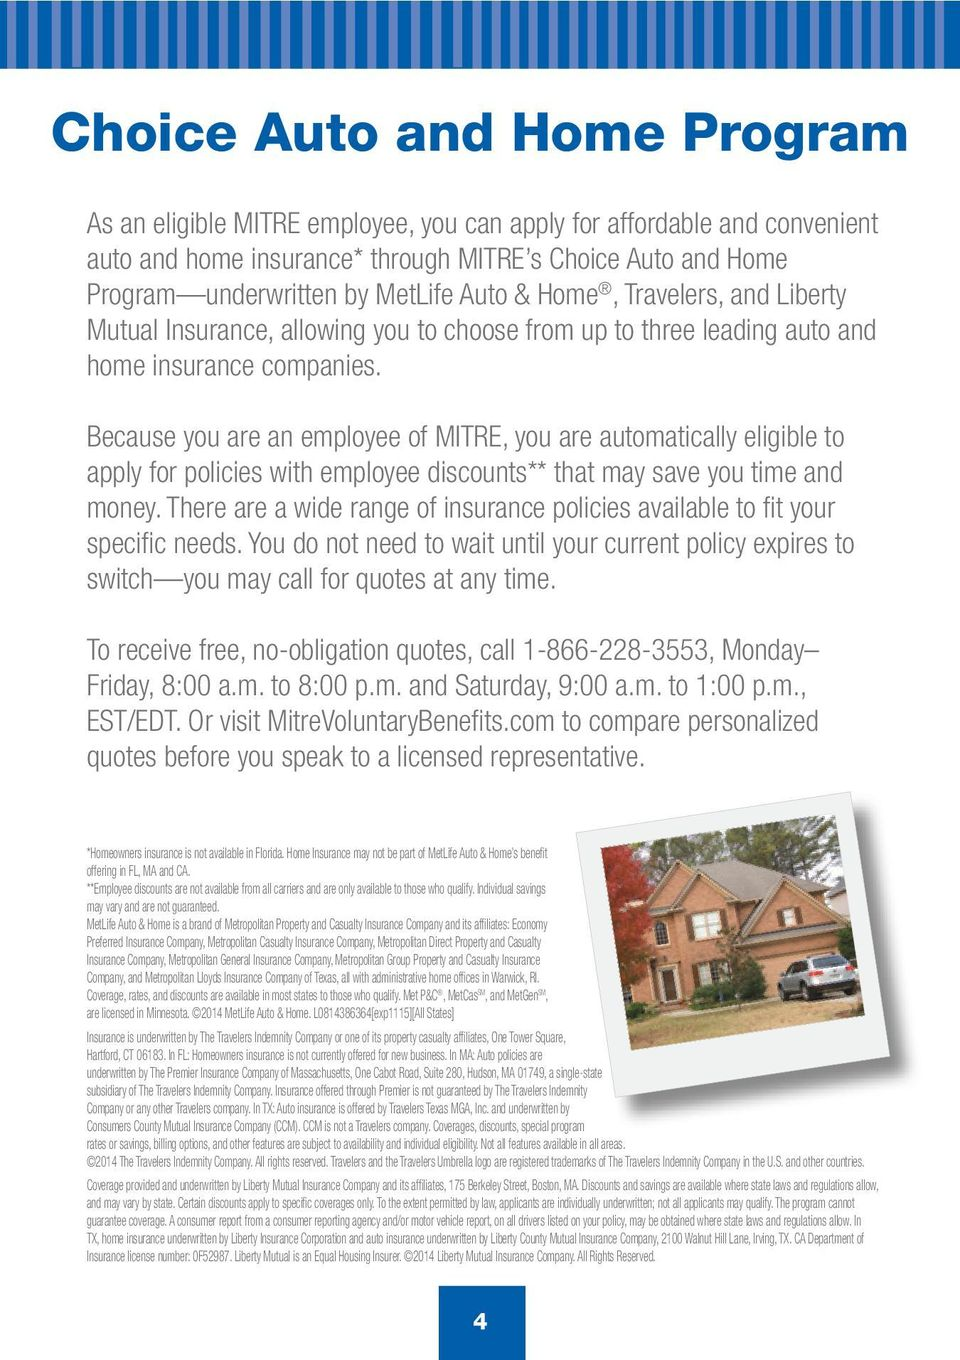 Voluntary Benefits for MITRE Employees - PDF